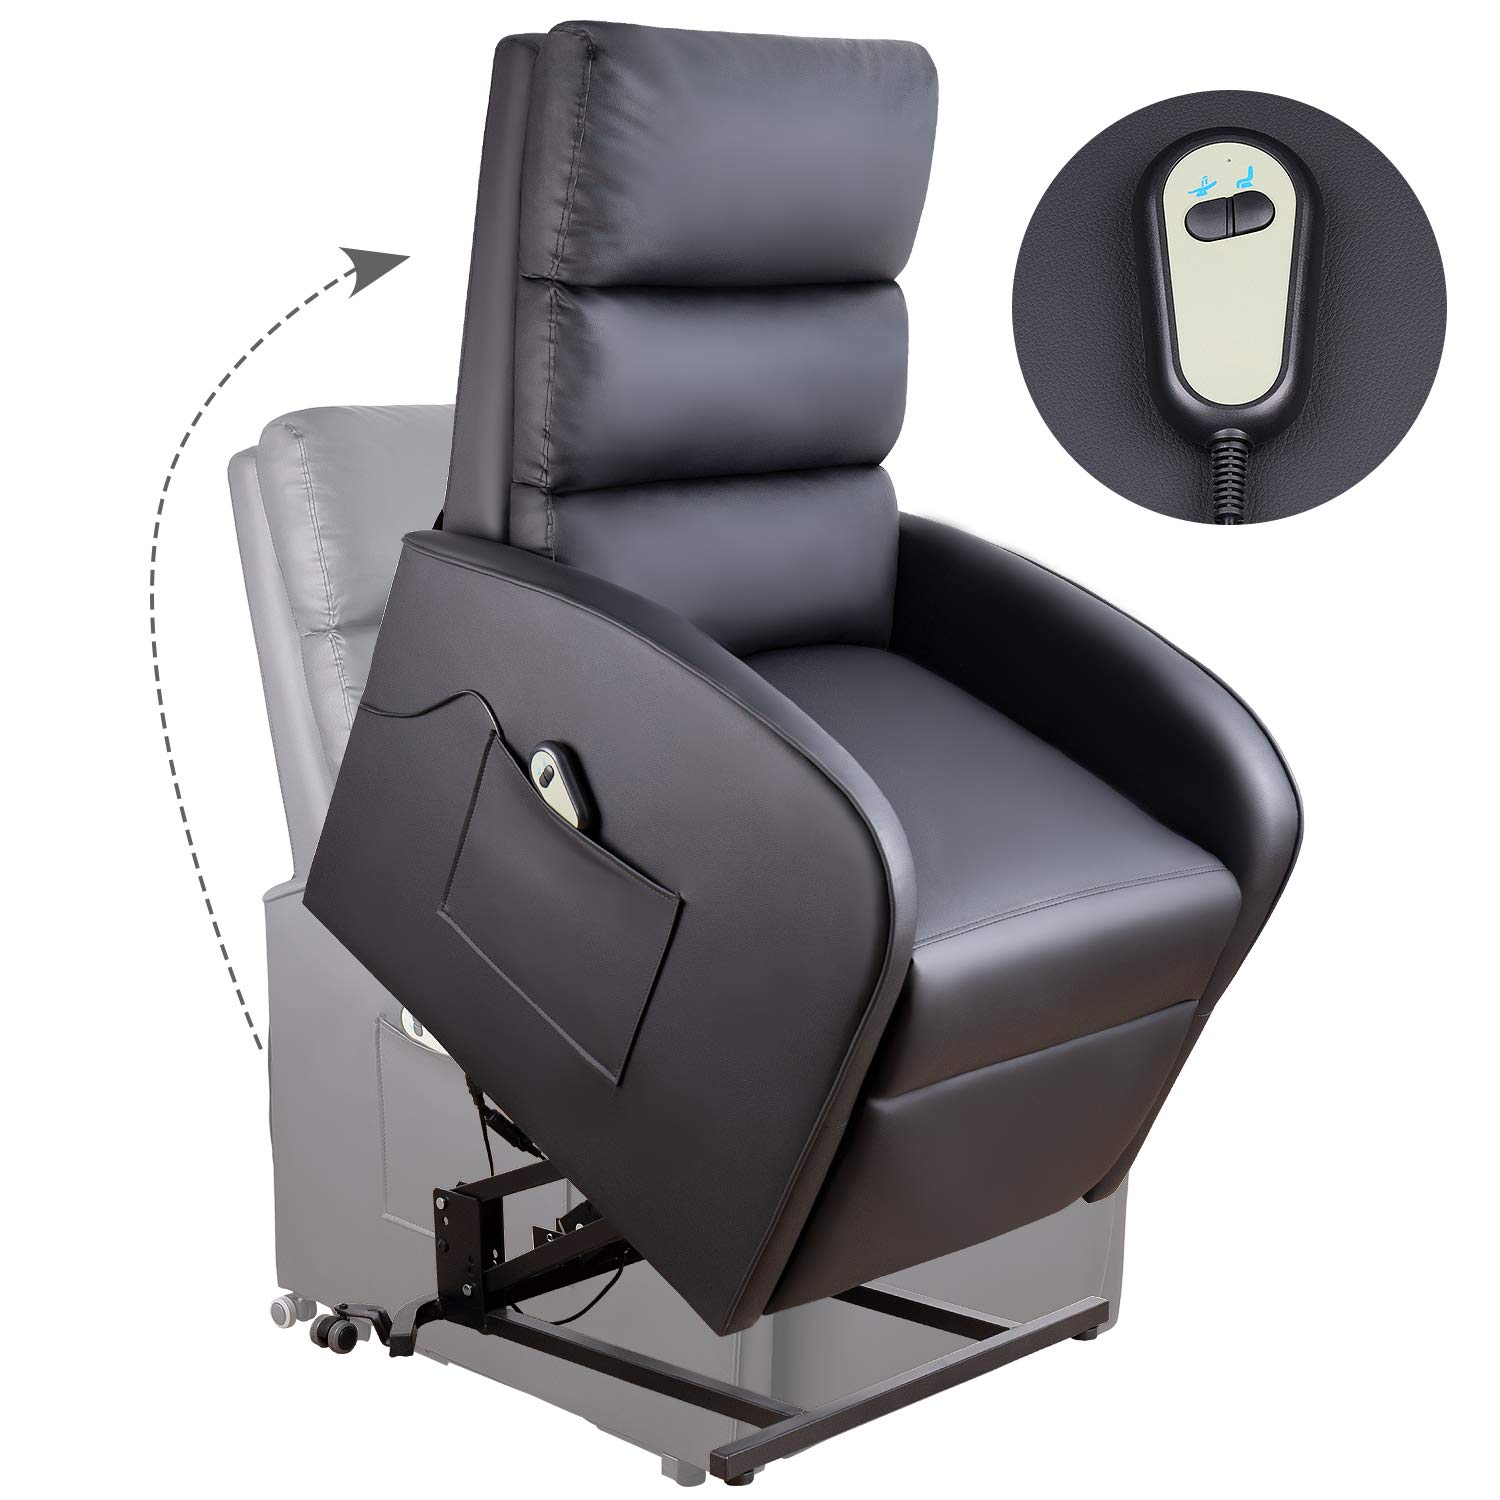 Homall Electric Power Lift Recliner Chair Sofa PU Leather Home Recliner for Elderly Classic Lounge Chair Living Room Chair with Safety Motion Reclining Mechanism(Black)